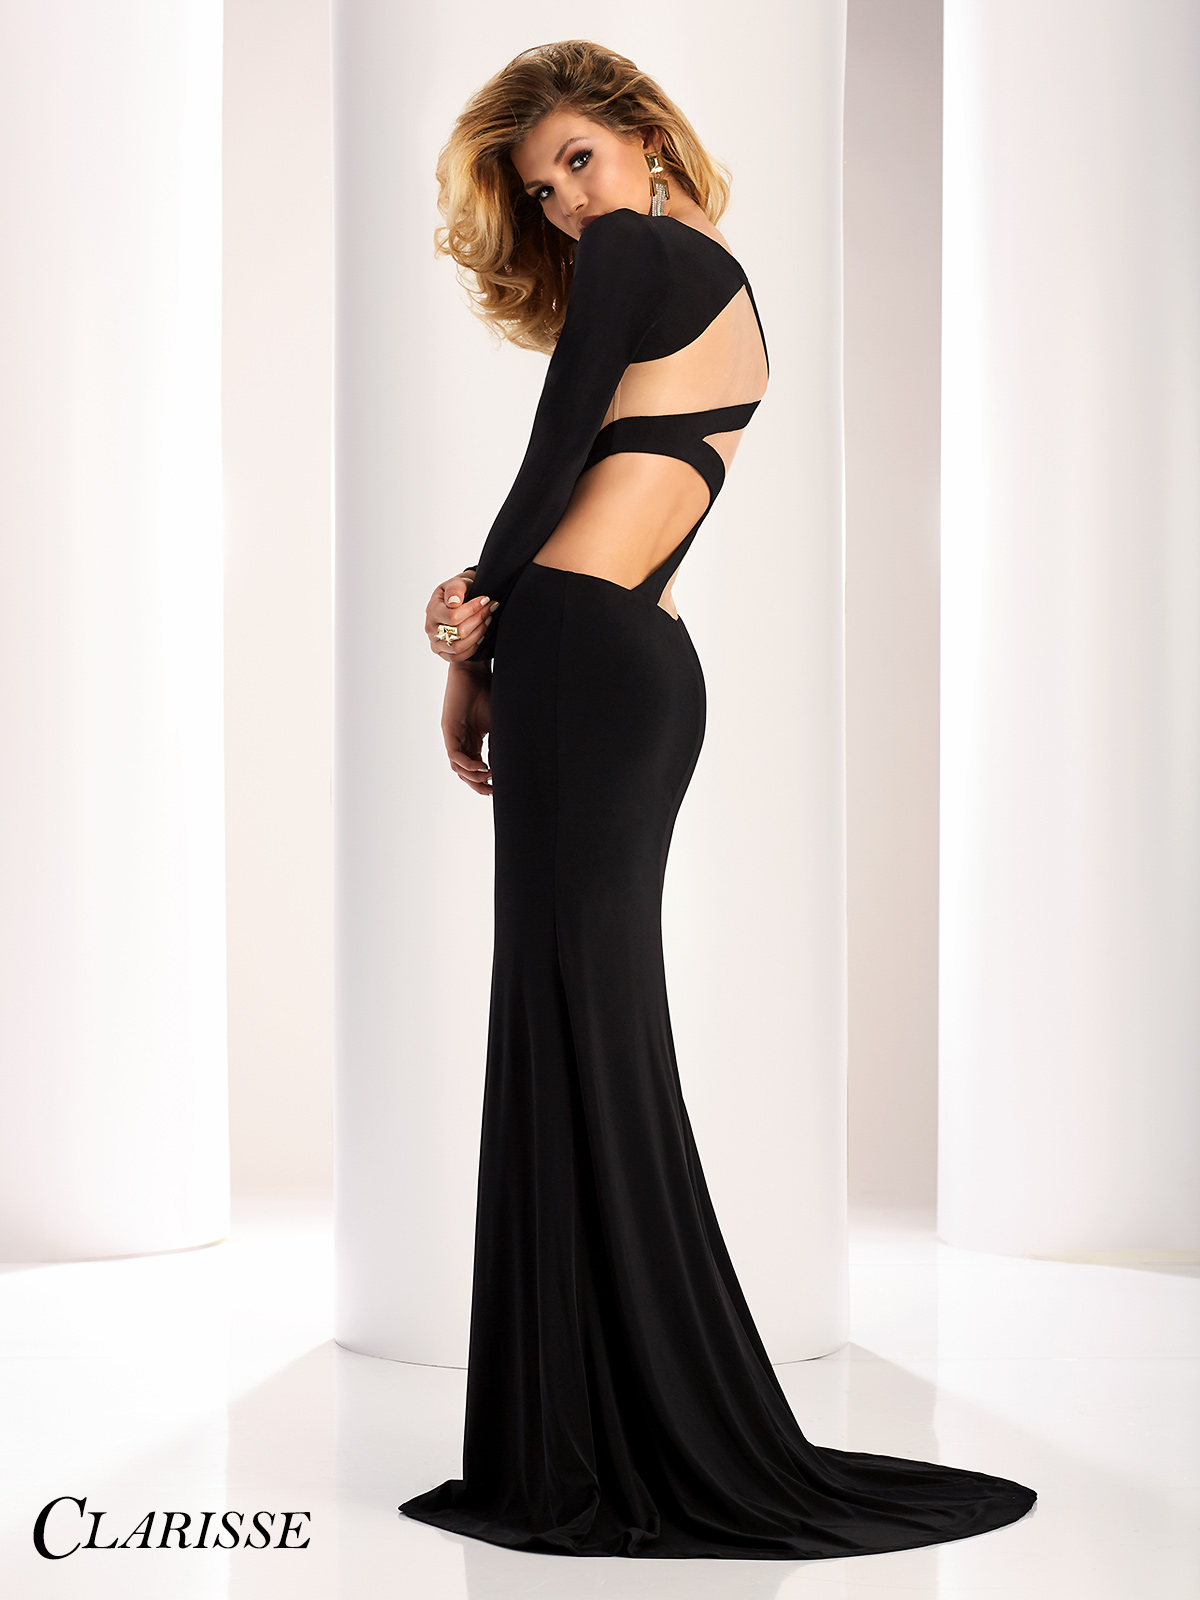 Sleeve Long cut out dress pictures new photo